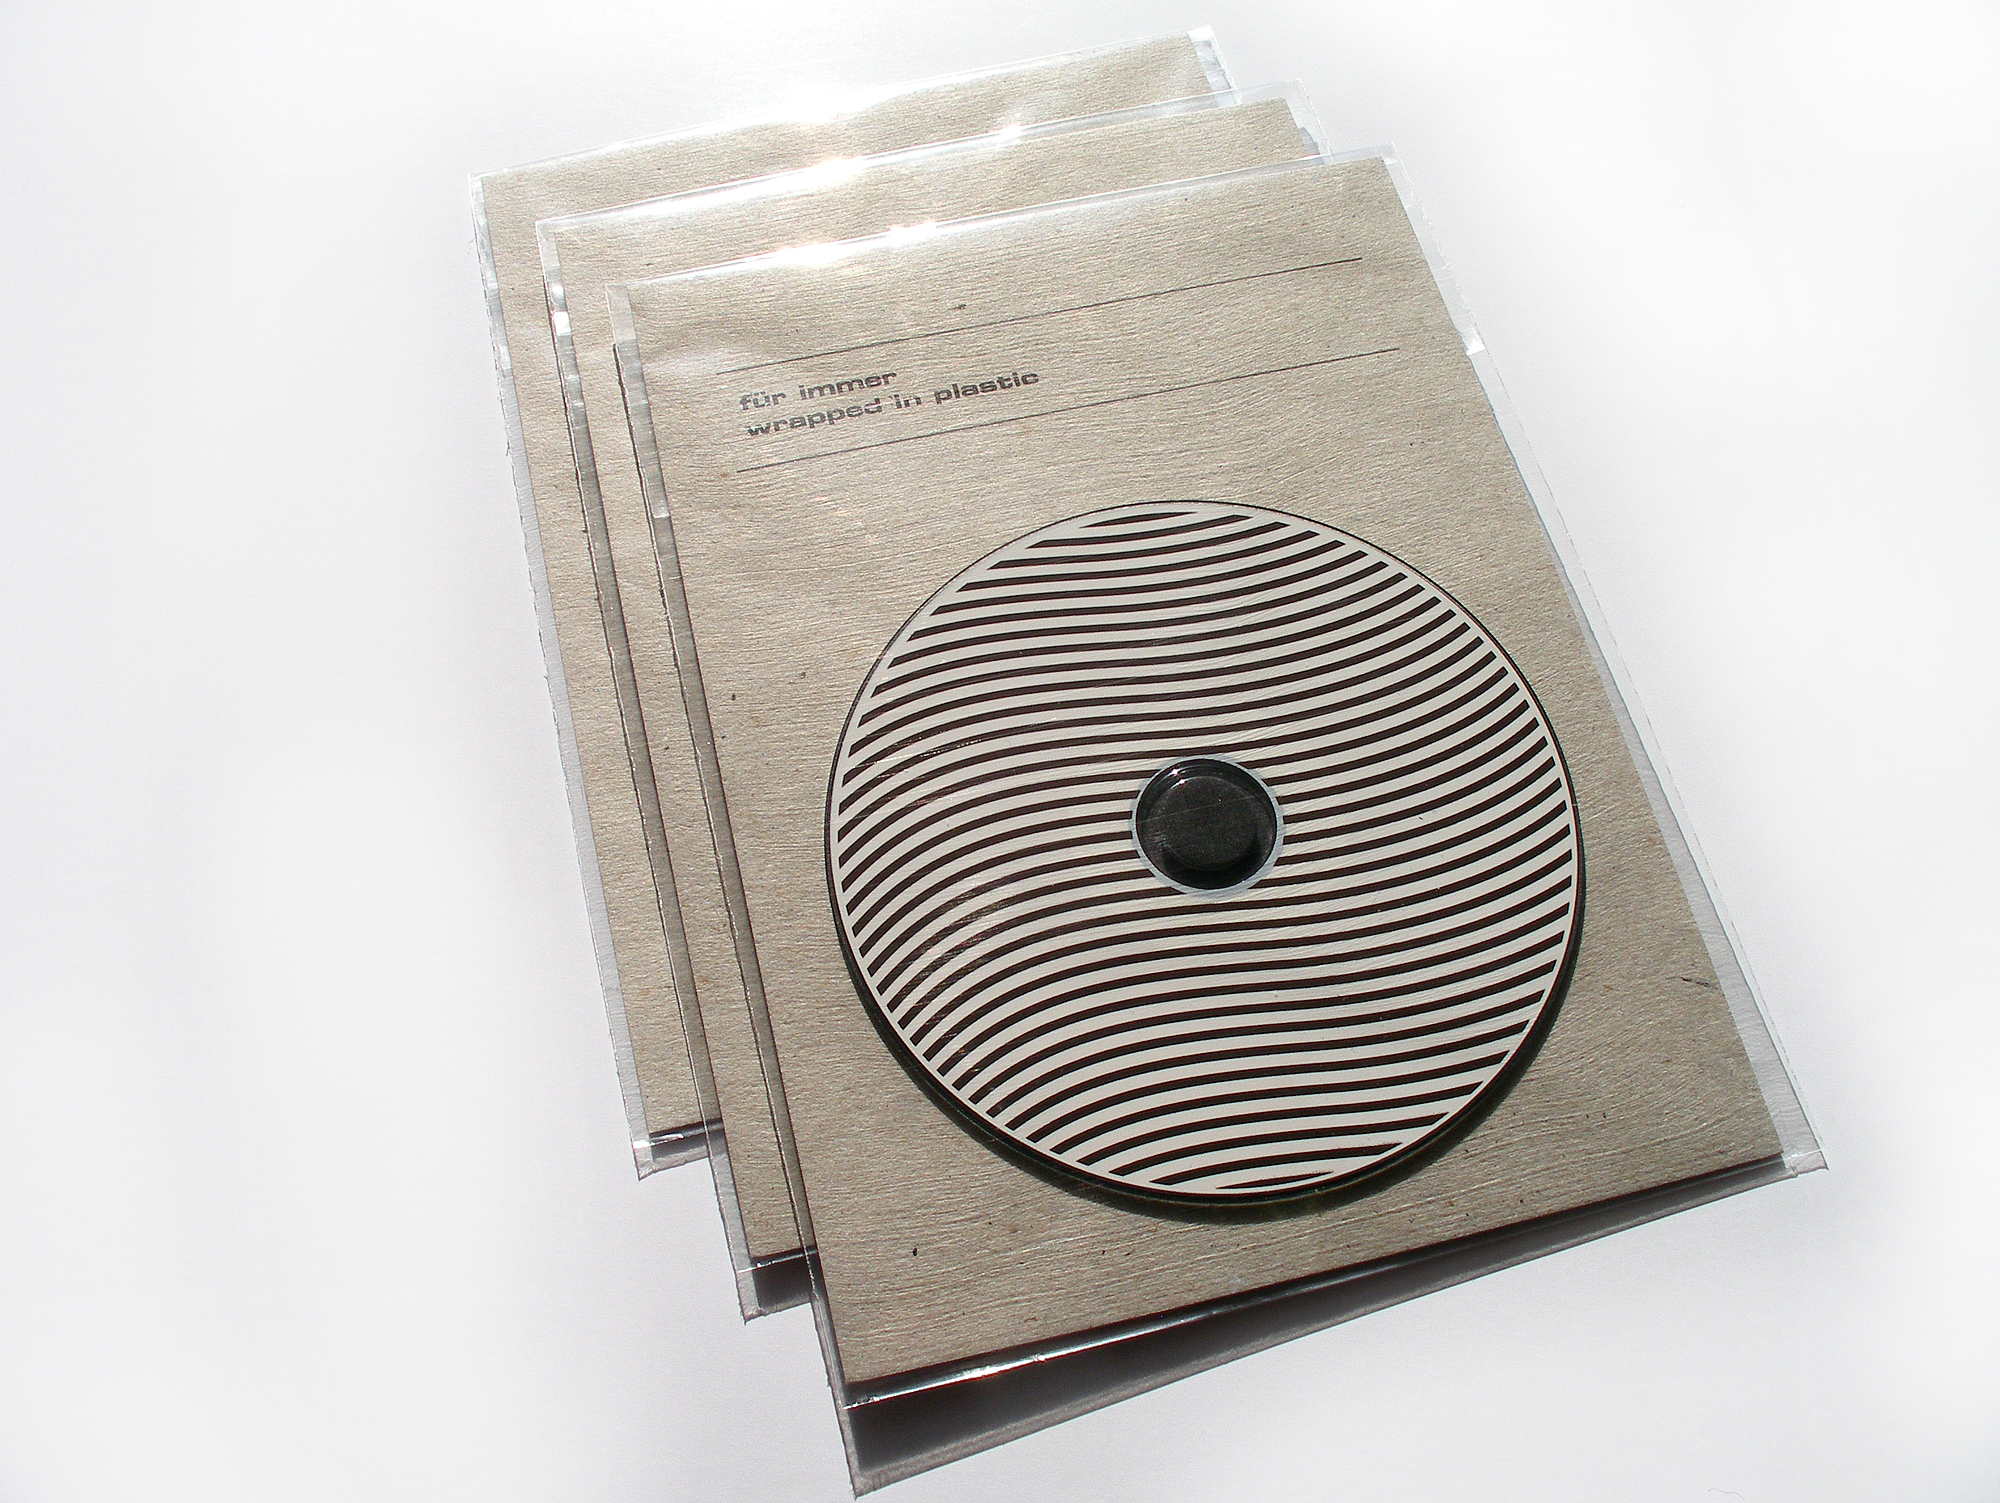 Cover image: Für Immer Wrapped in plastic (2010)